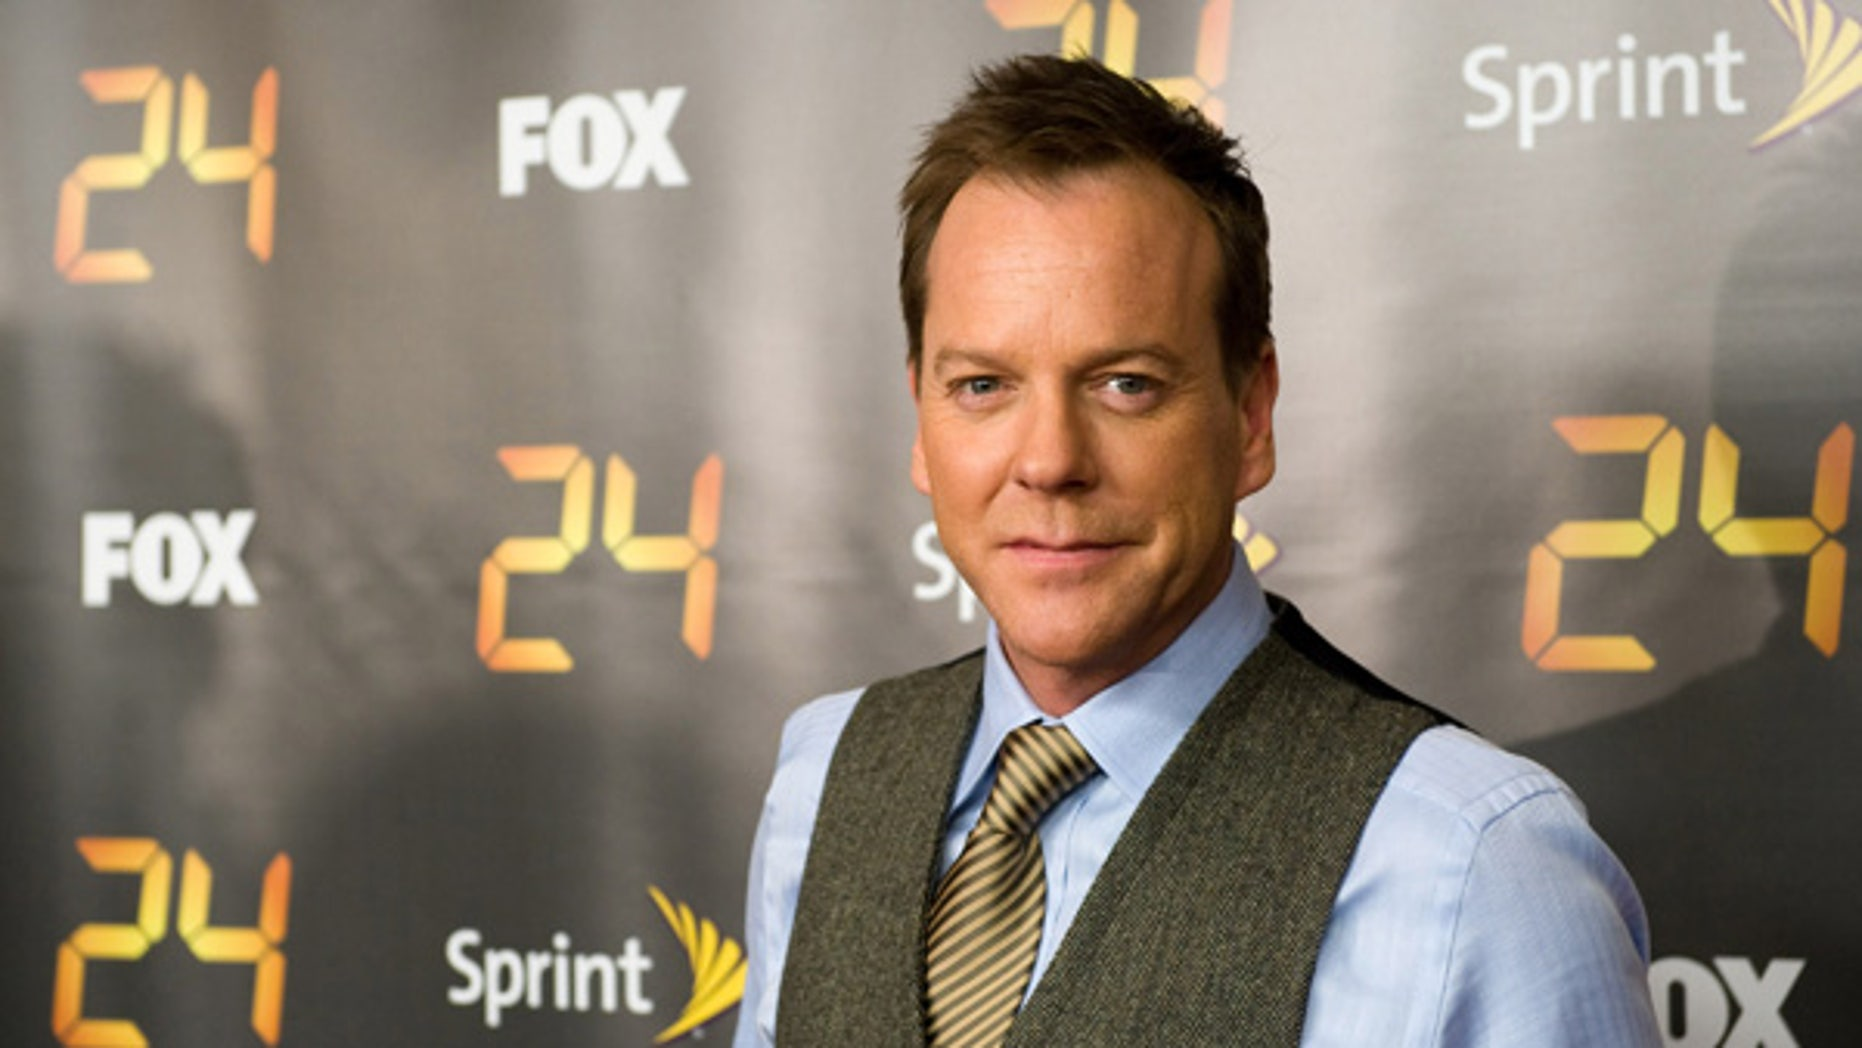 """Kiefer Sutherland attends the premiere screening for season eight of the television drama """"24"""" in New York, Thursday, Jan. 14, 2010. (AP Photo/Charles Sykes)"""